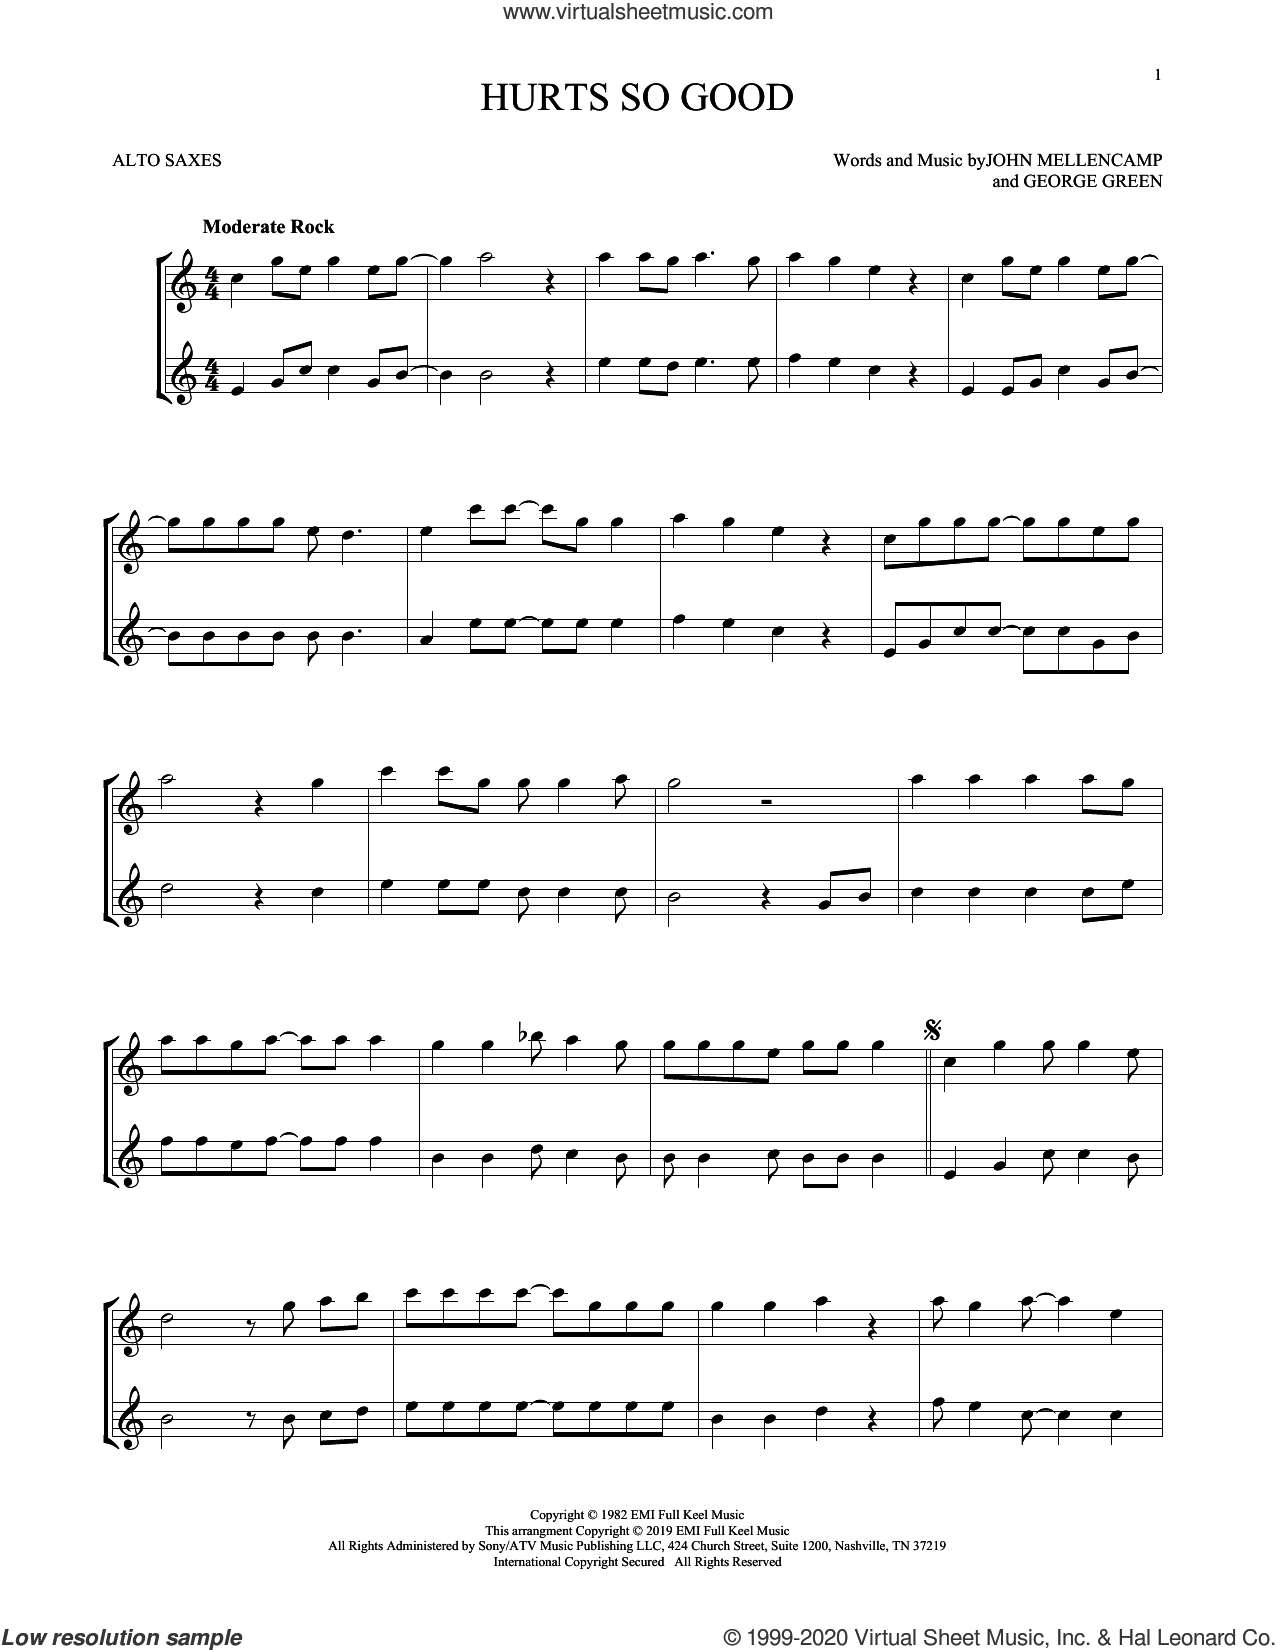 Hurts So Good sheet music for two alto saxophones (duets) by John Mellencamp and George Green, intermediate skill level